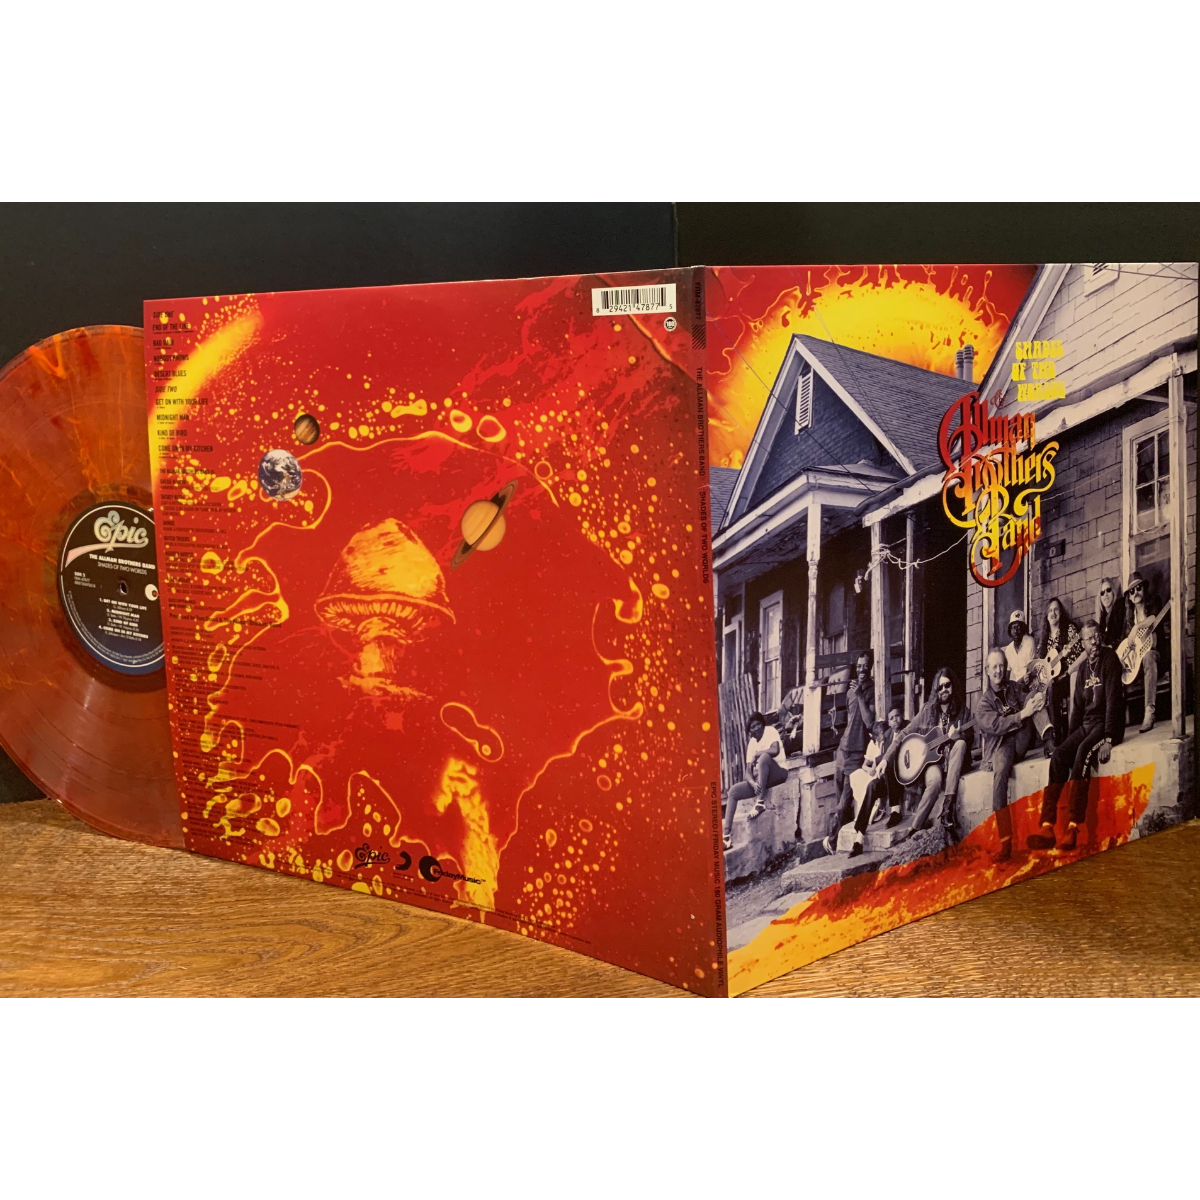 The Allman Brothers Band Shades Of Two Worlds (180 Gram Red & Orange Swirl Audiophile Vinyl/Limited Edition/Gatefold Cover)